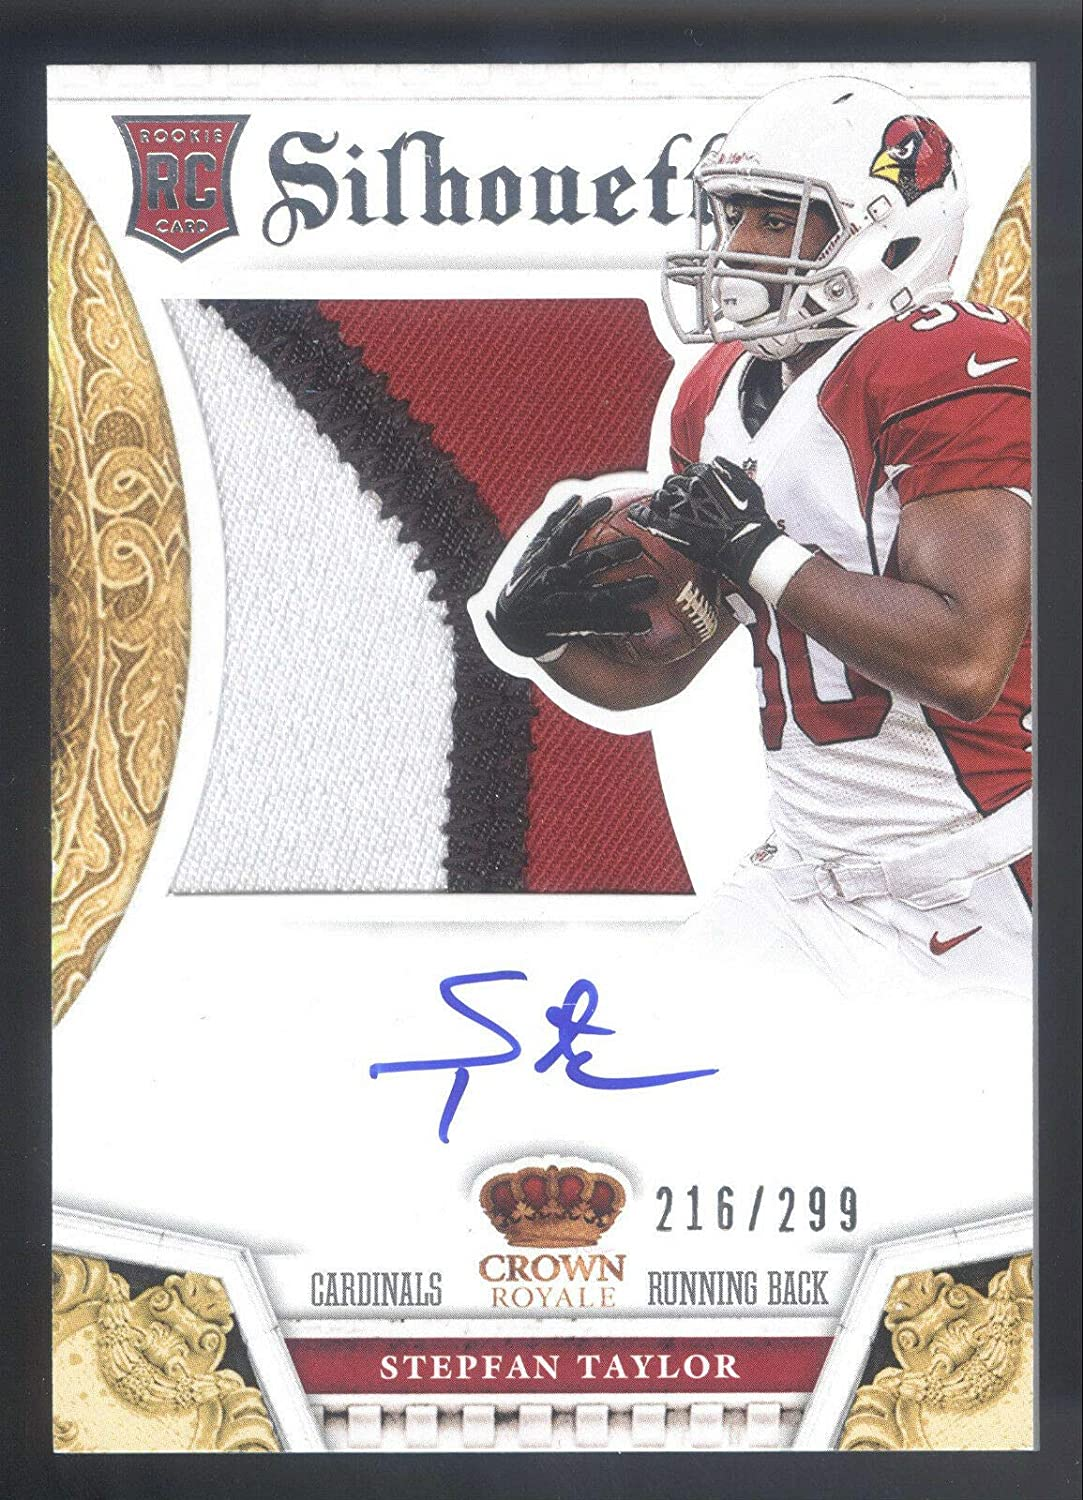 2013 Crown Royale #234 Stepfan Taylor Great interest Autogr 3 Card On Clr Patch We OFFer at cheap prices